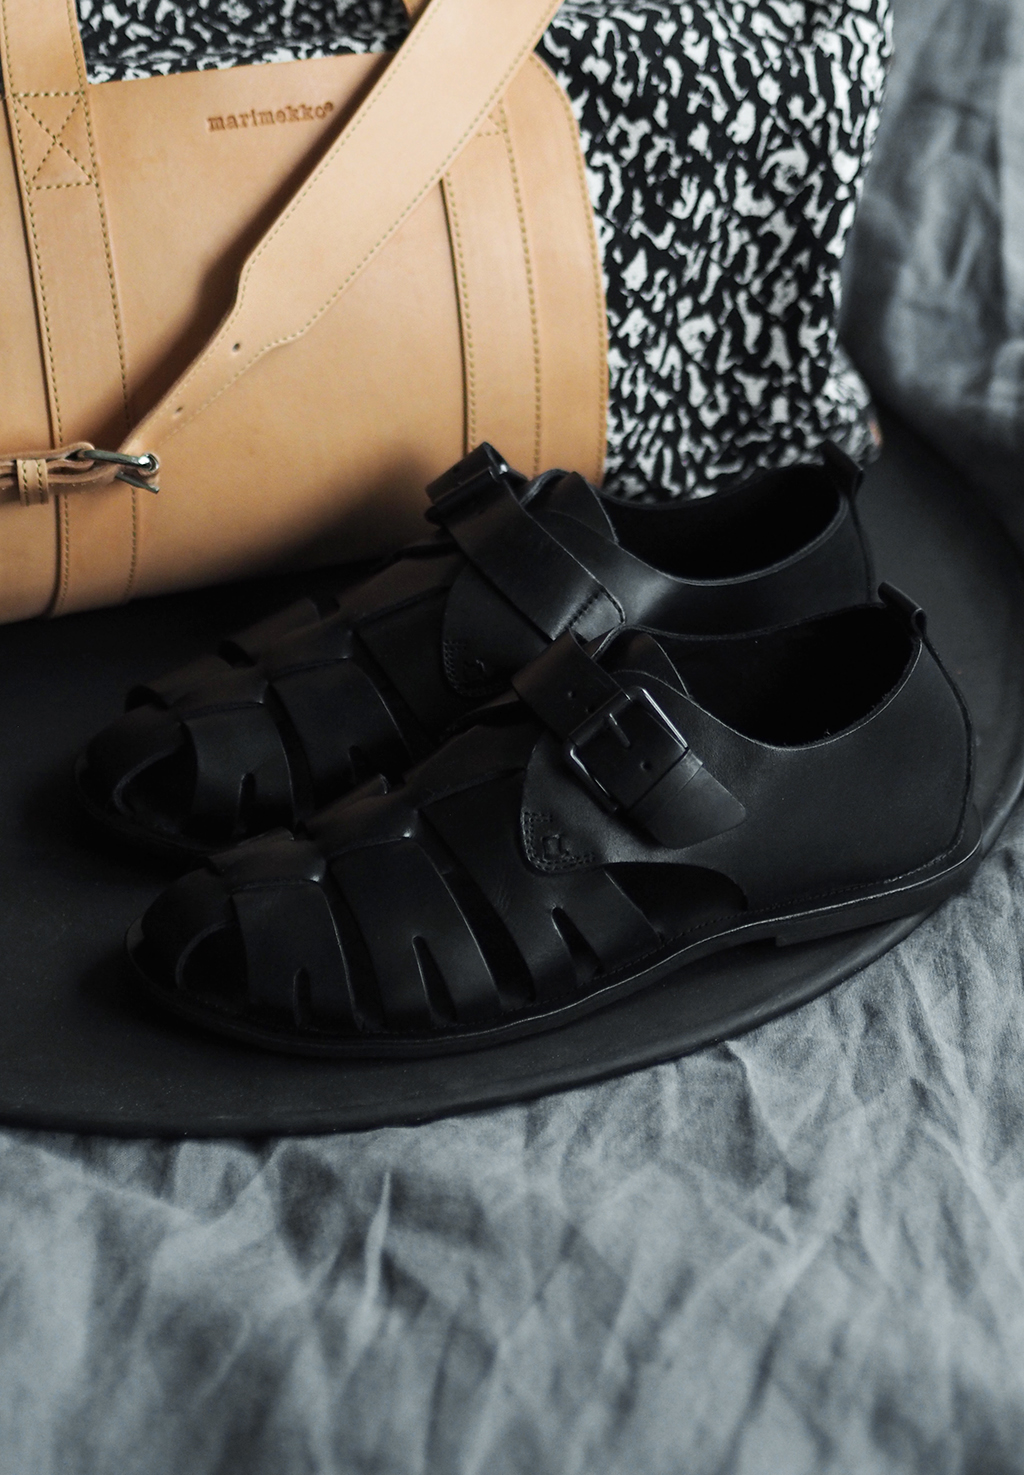 Zign leather sandals